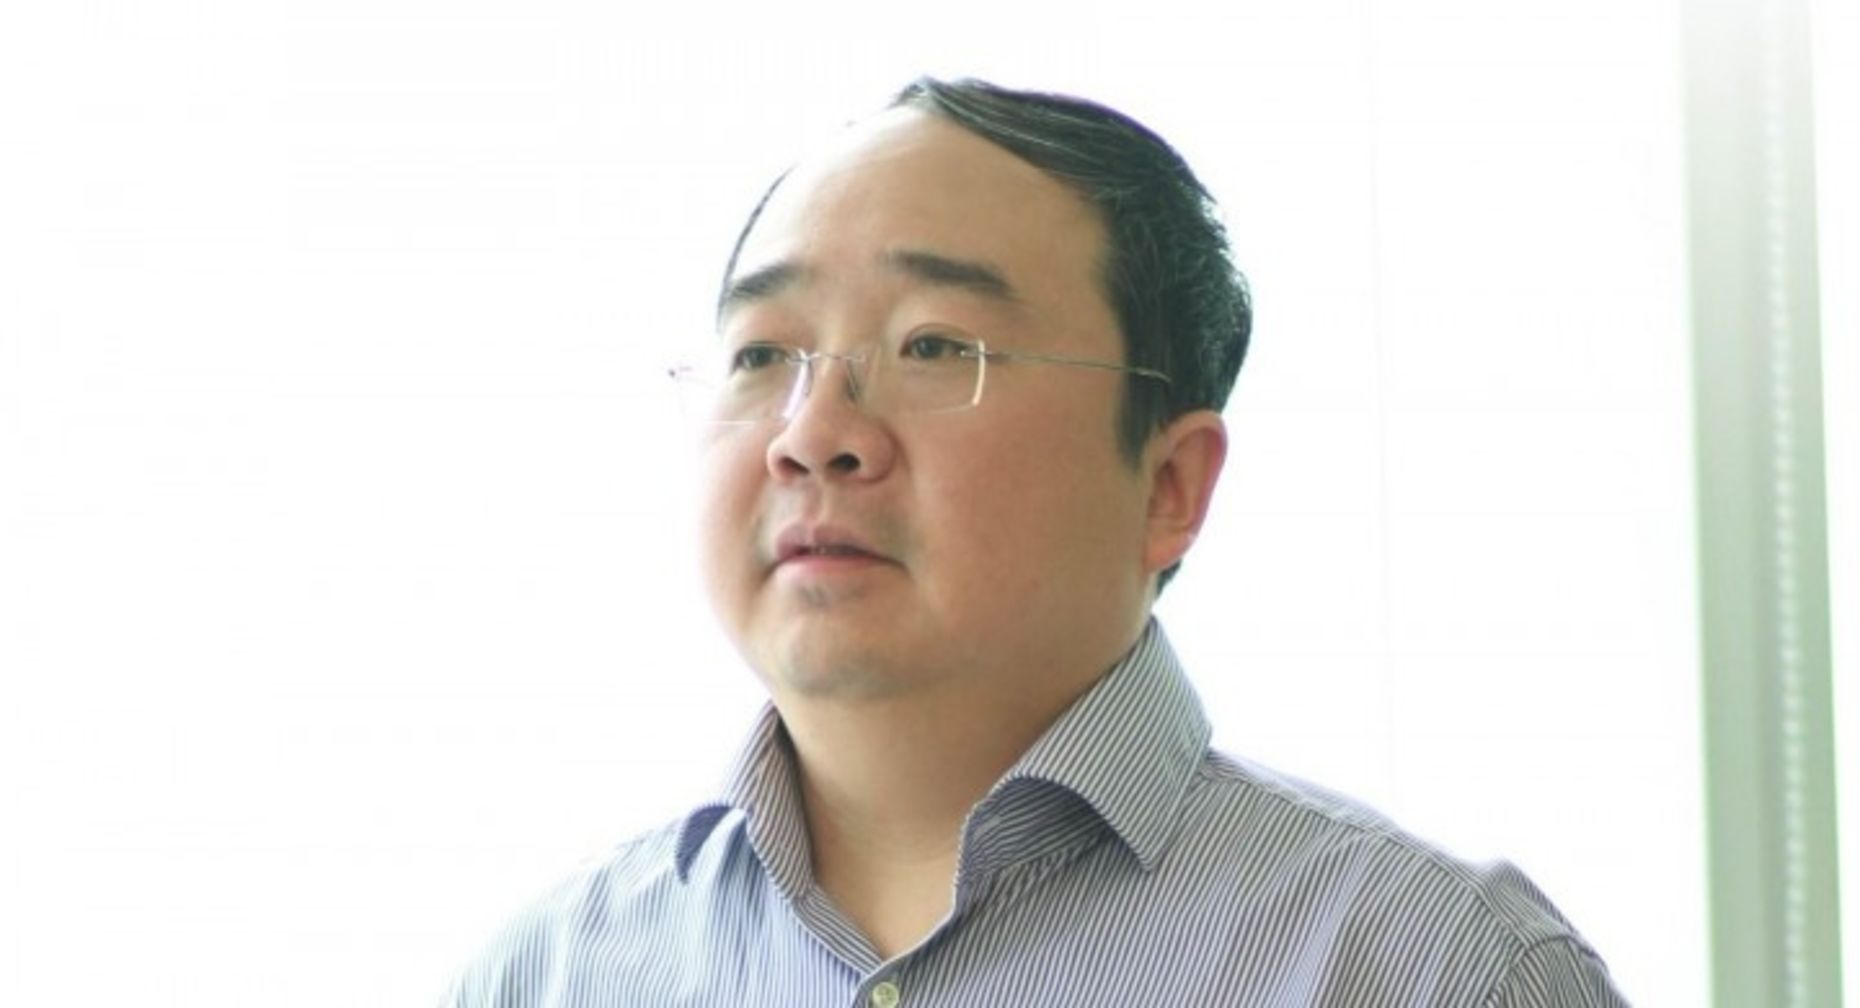 Apus Group CEO Tao Li. Credit: Wikimedia Commons